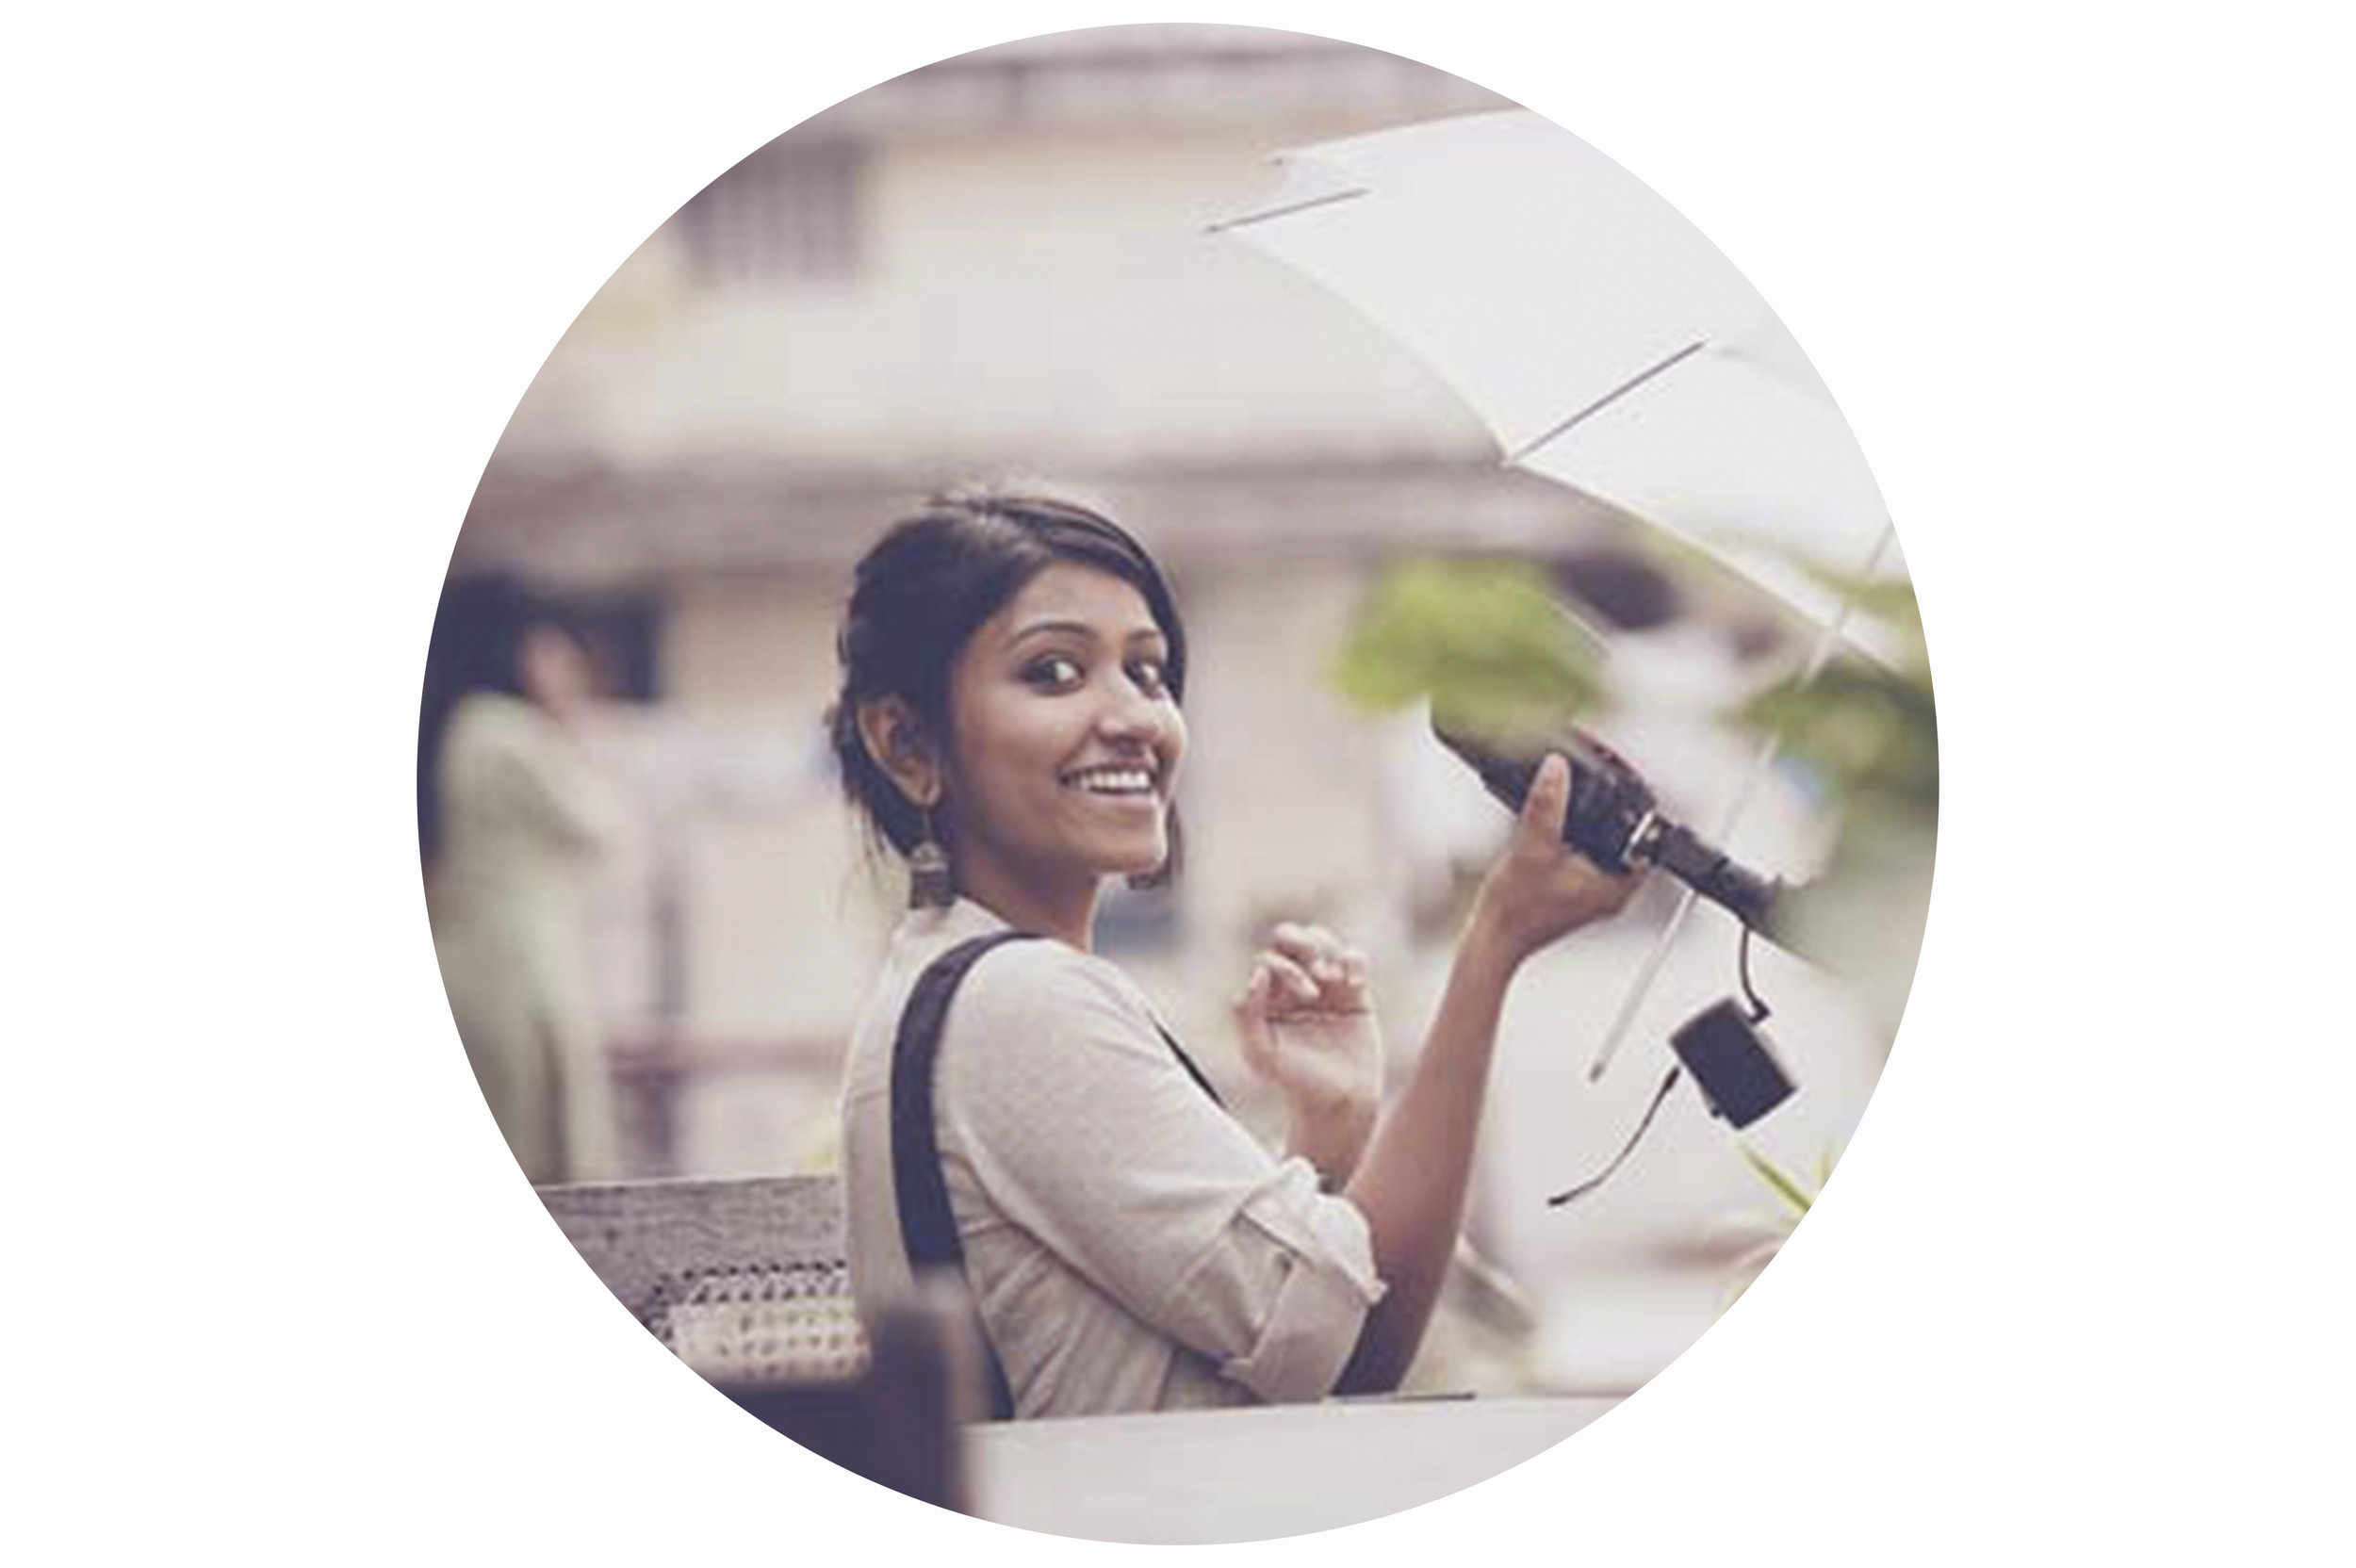 Kirthana Devdas has been documenting weddings and family portraits since 2010. She has also worked for brands like Asian paints, Hidesign, Marico, HCL, facebook and some NGOs.  Ki is based in Chennai, India.